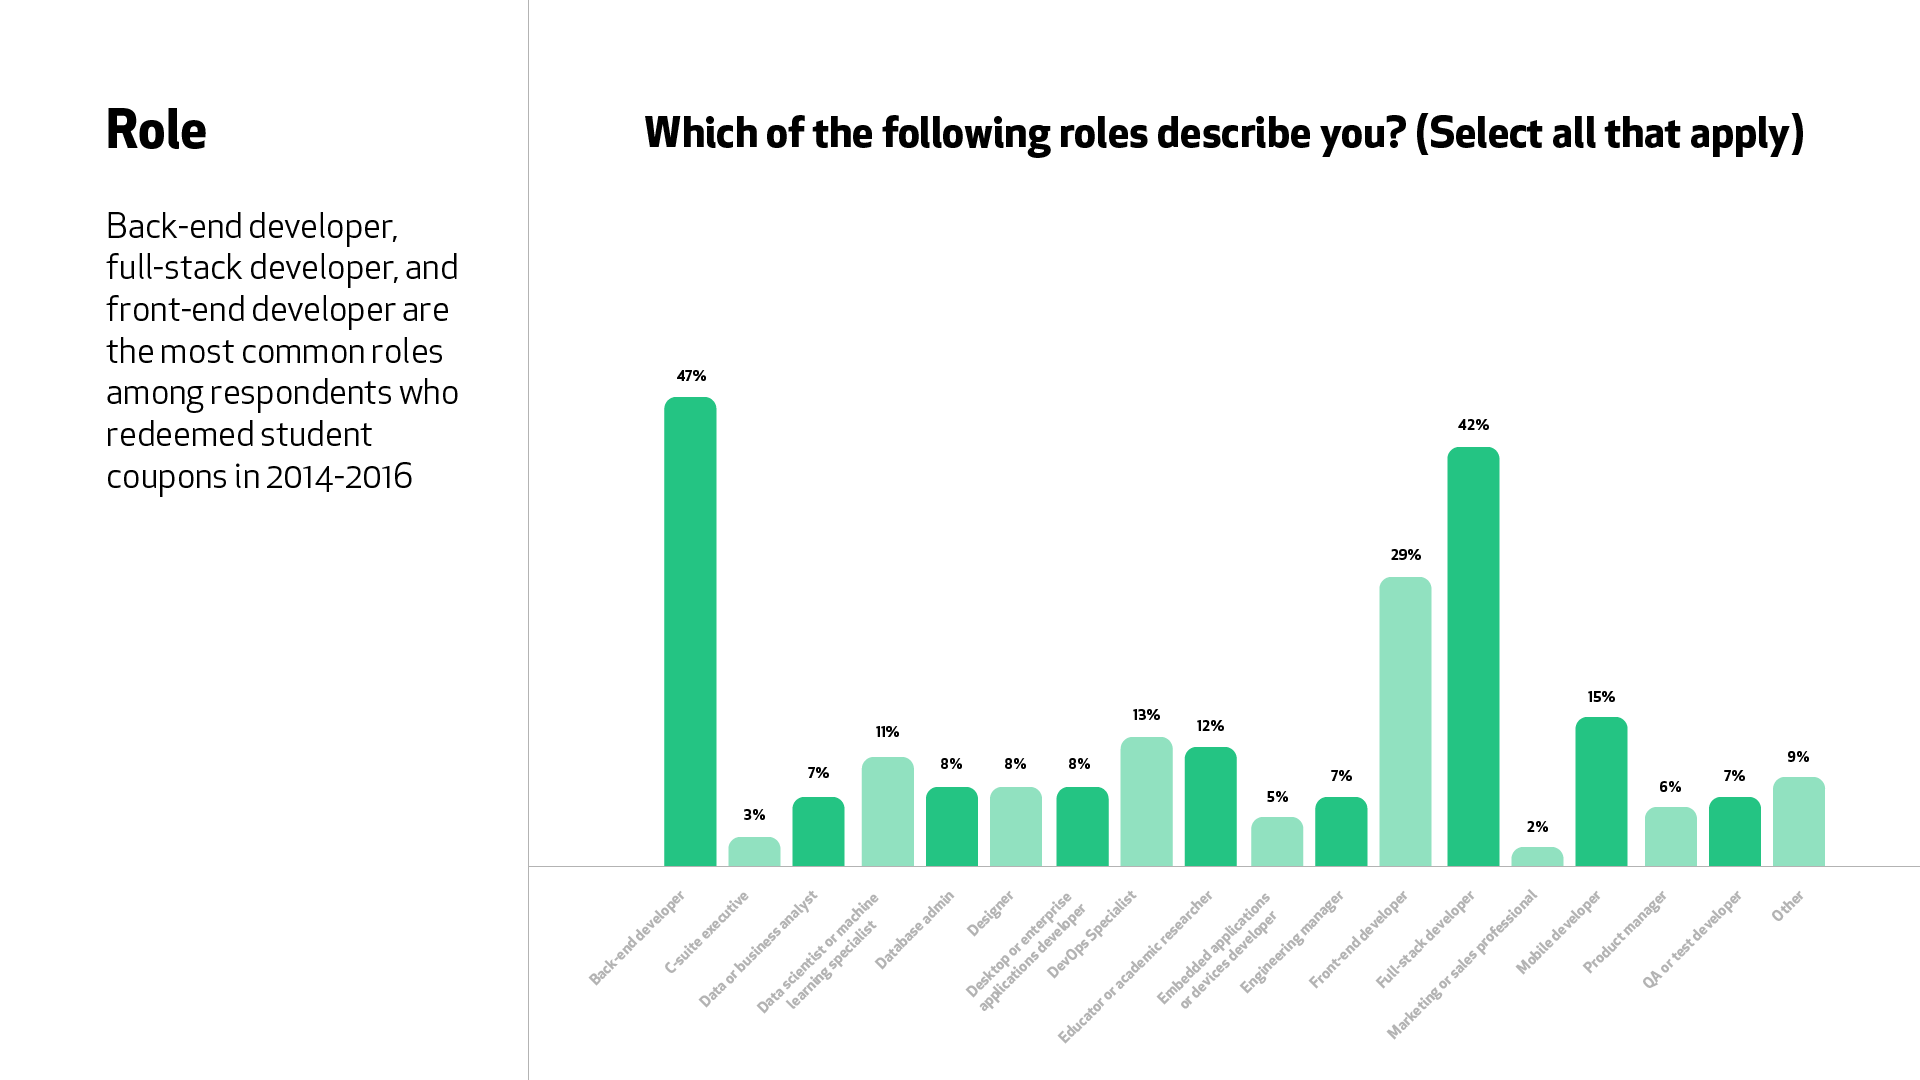 """A graph for the question """"Which of the following roles describe you?"""" Back-end developer (47%), full-stack developer (42%), and front-end developer (29%) are the most common roles."""